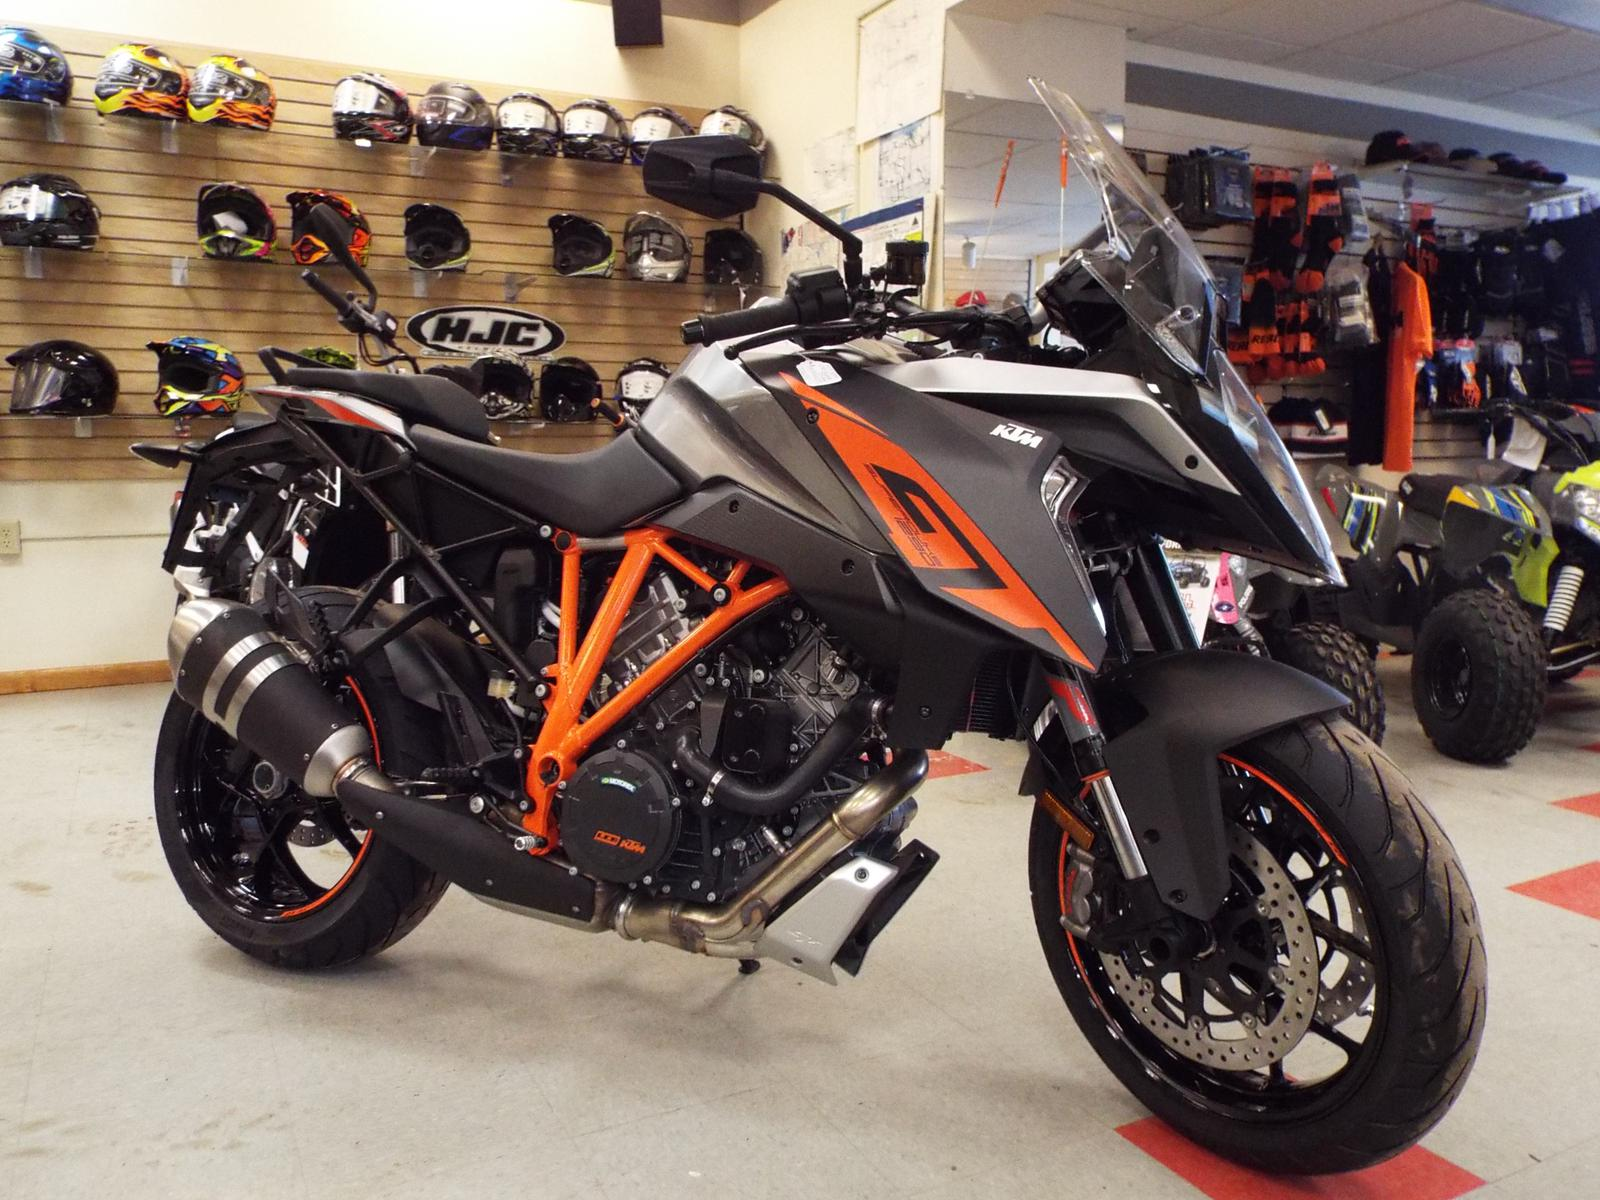 2017 ktm 1290 super duke gt for sale in farmington, ny. o'neill